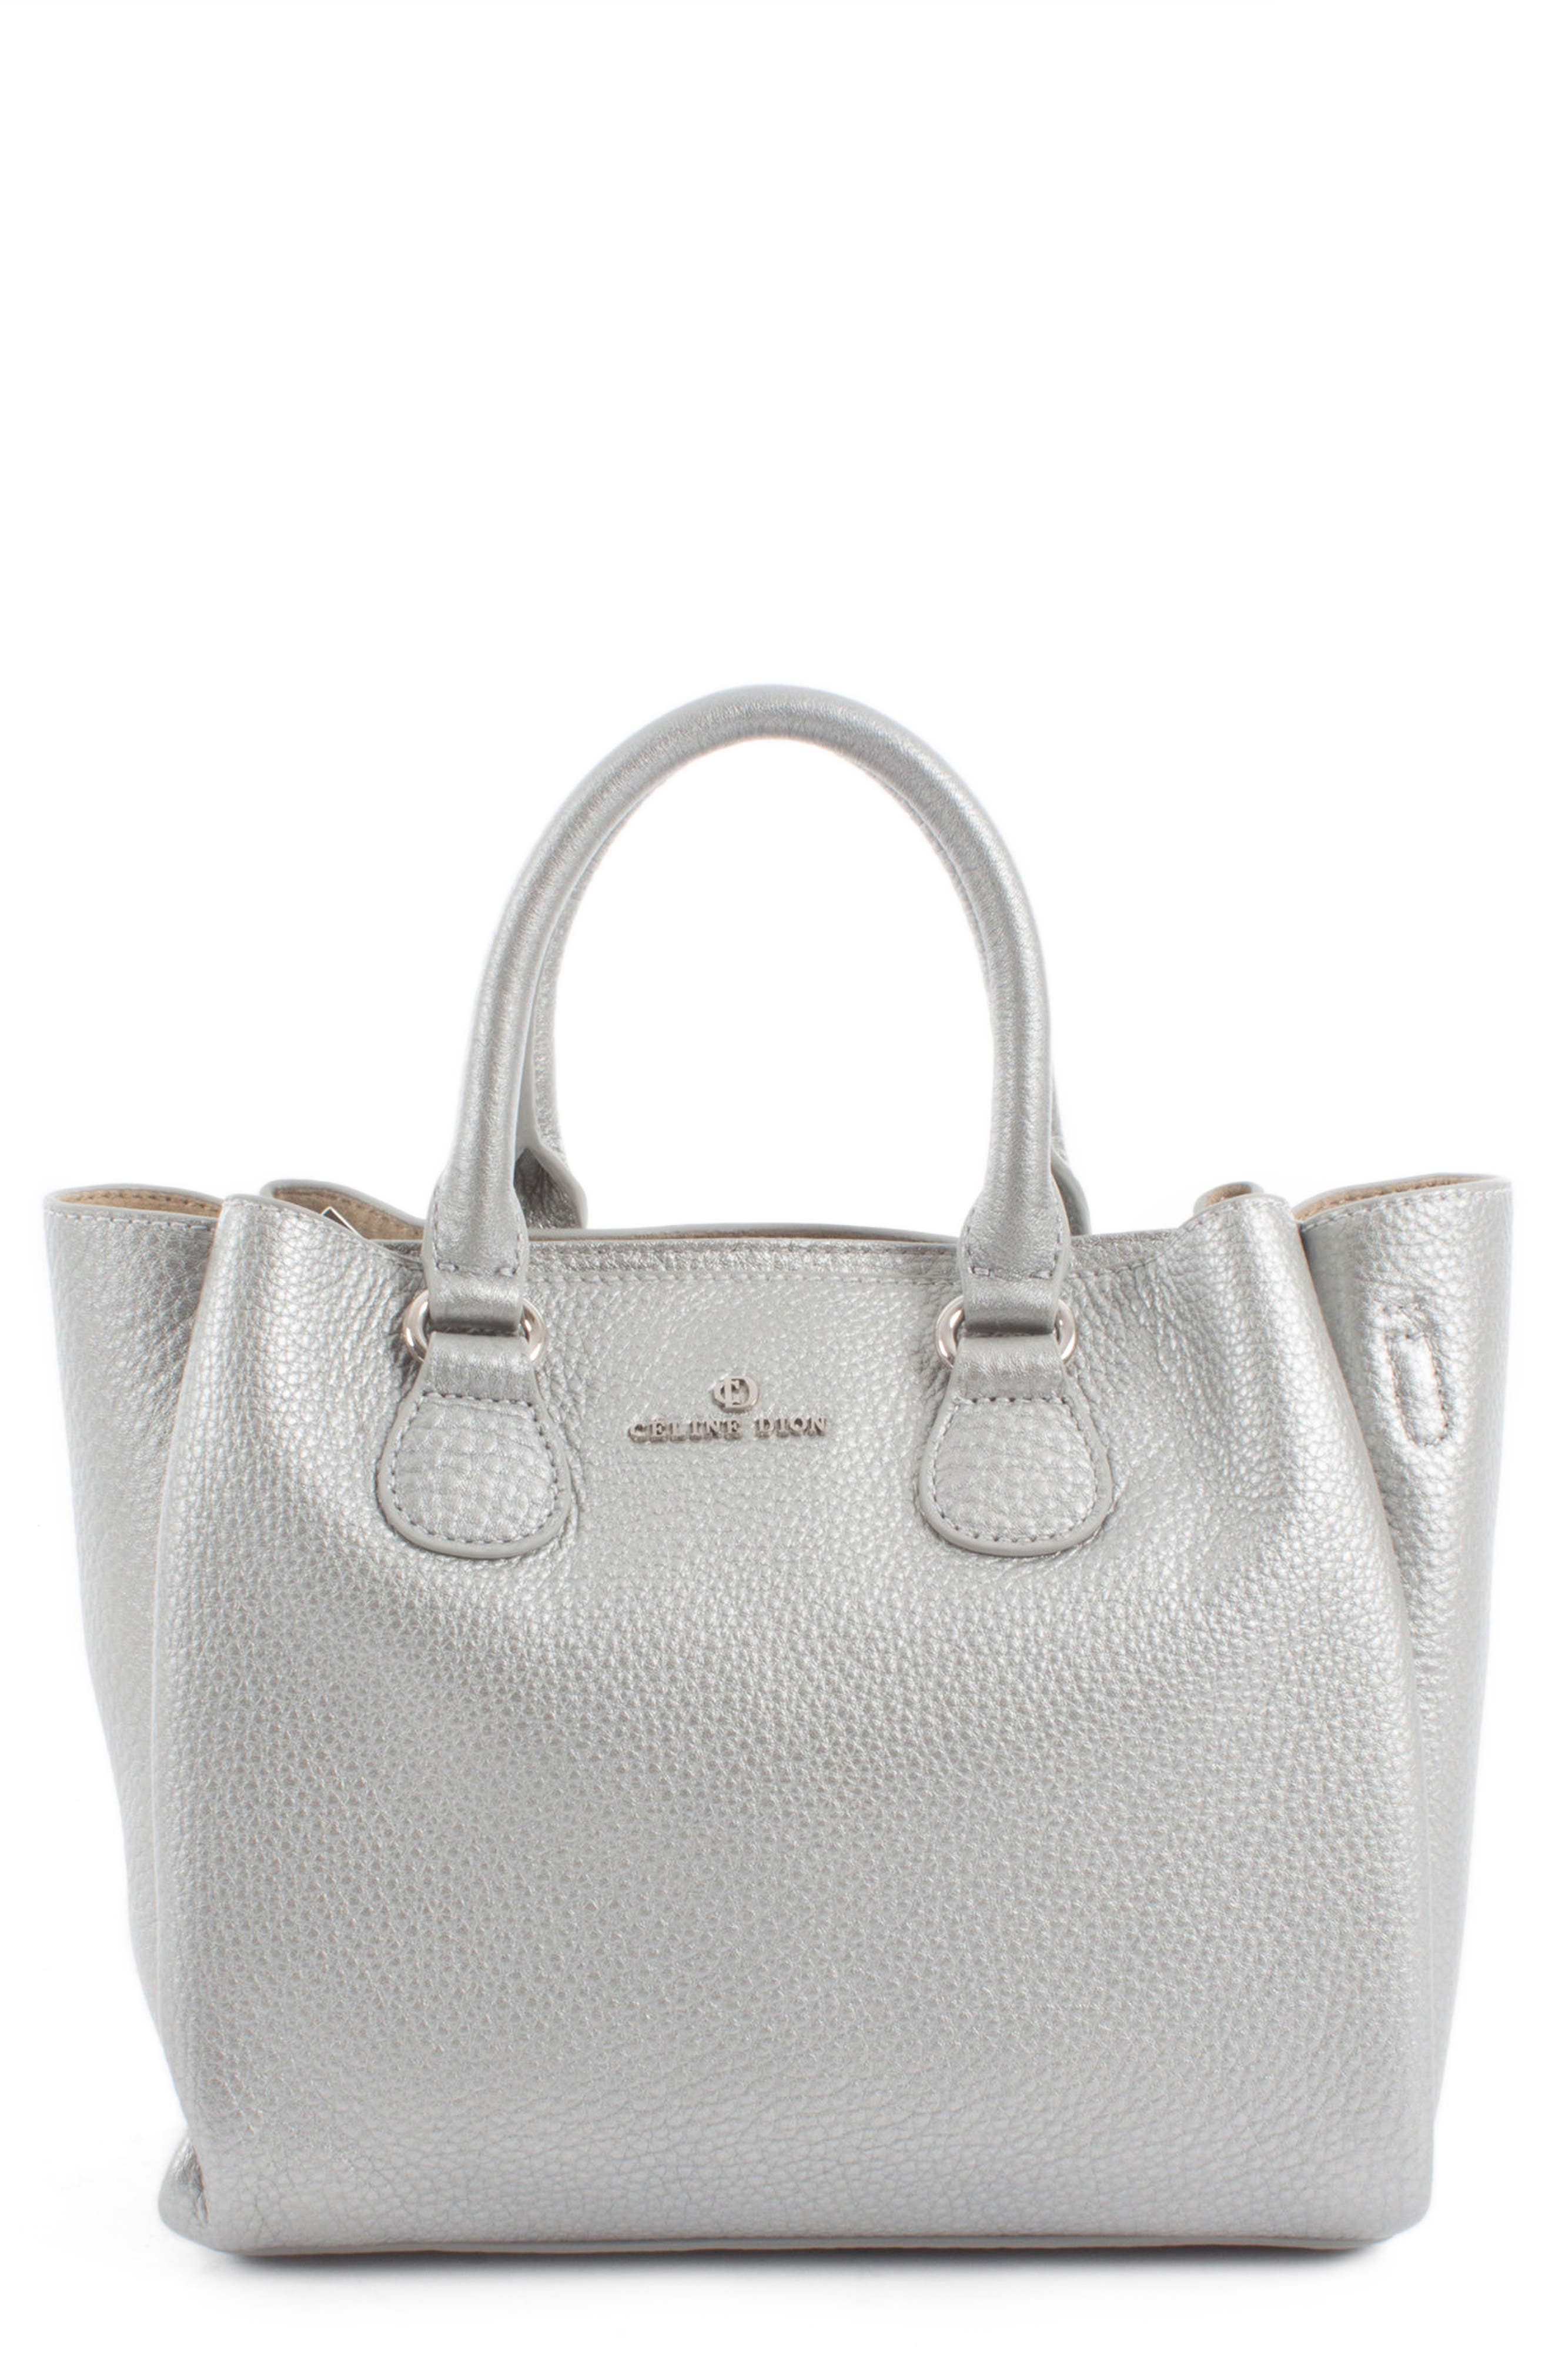 Alternate Image 1 Selected - Céline Dion Small Adagio Leather Satchel